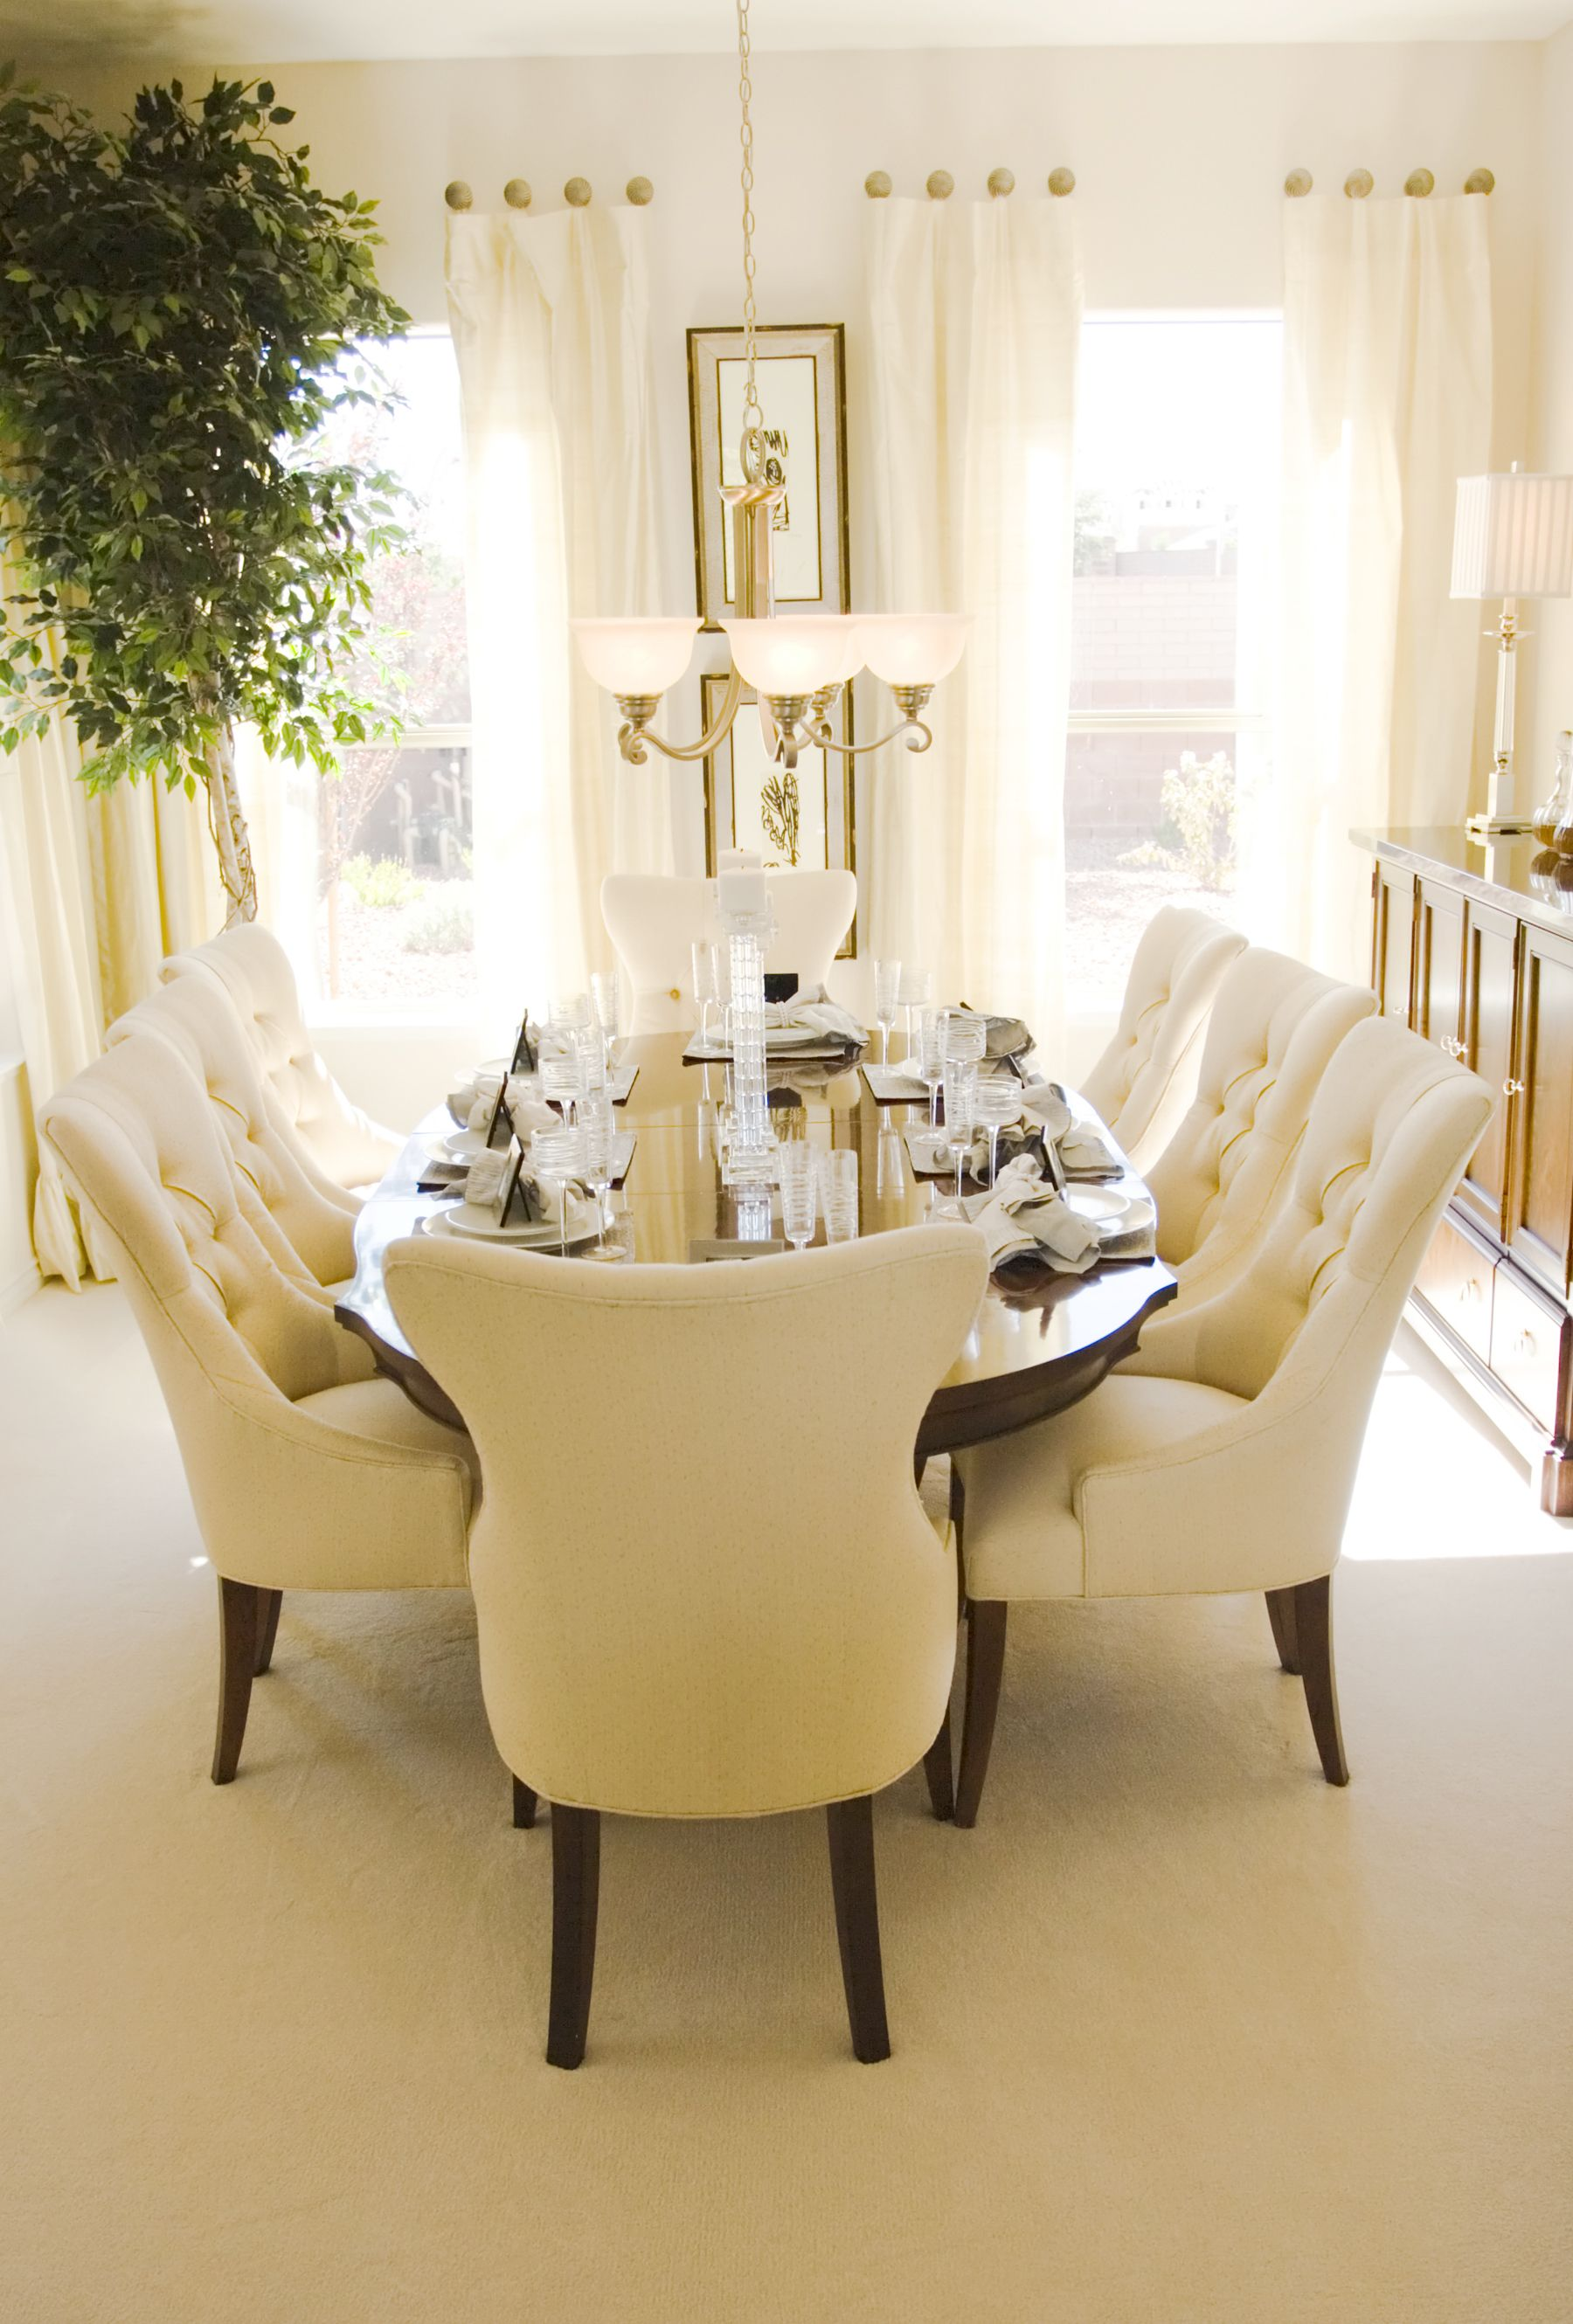 36 Ultra Luxury Dining Room Designs Best Of The Best Photos Dining Room Interiors Farmhouse Dining Room Luxury Dining Room